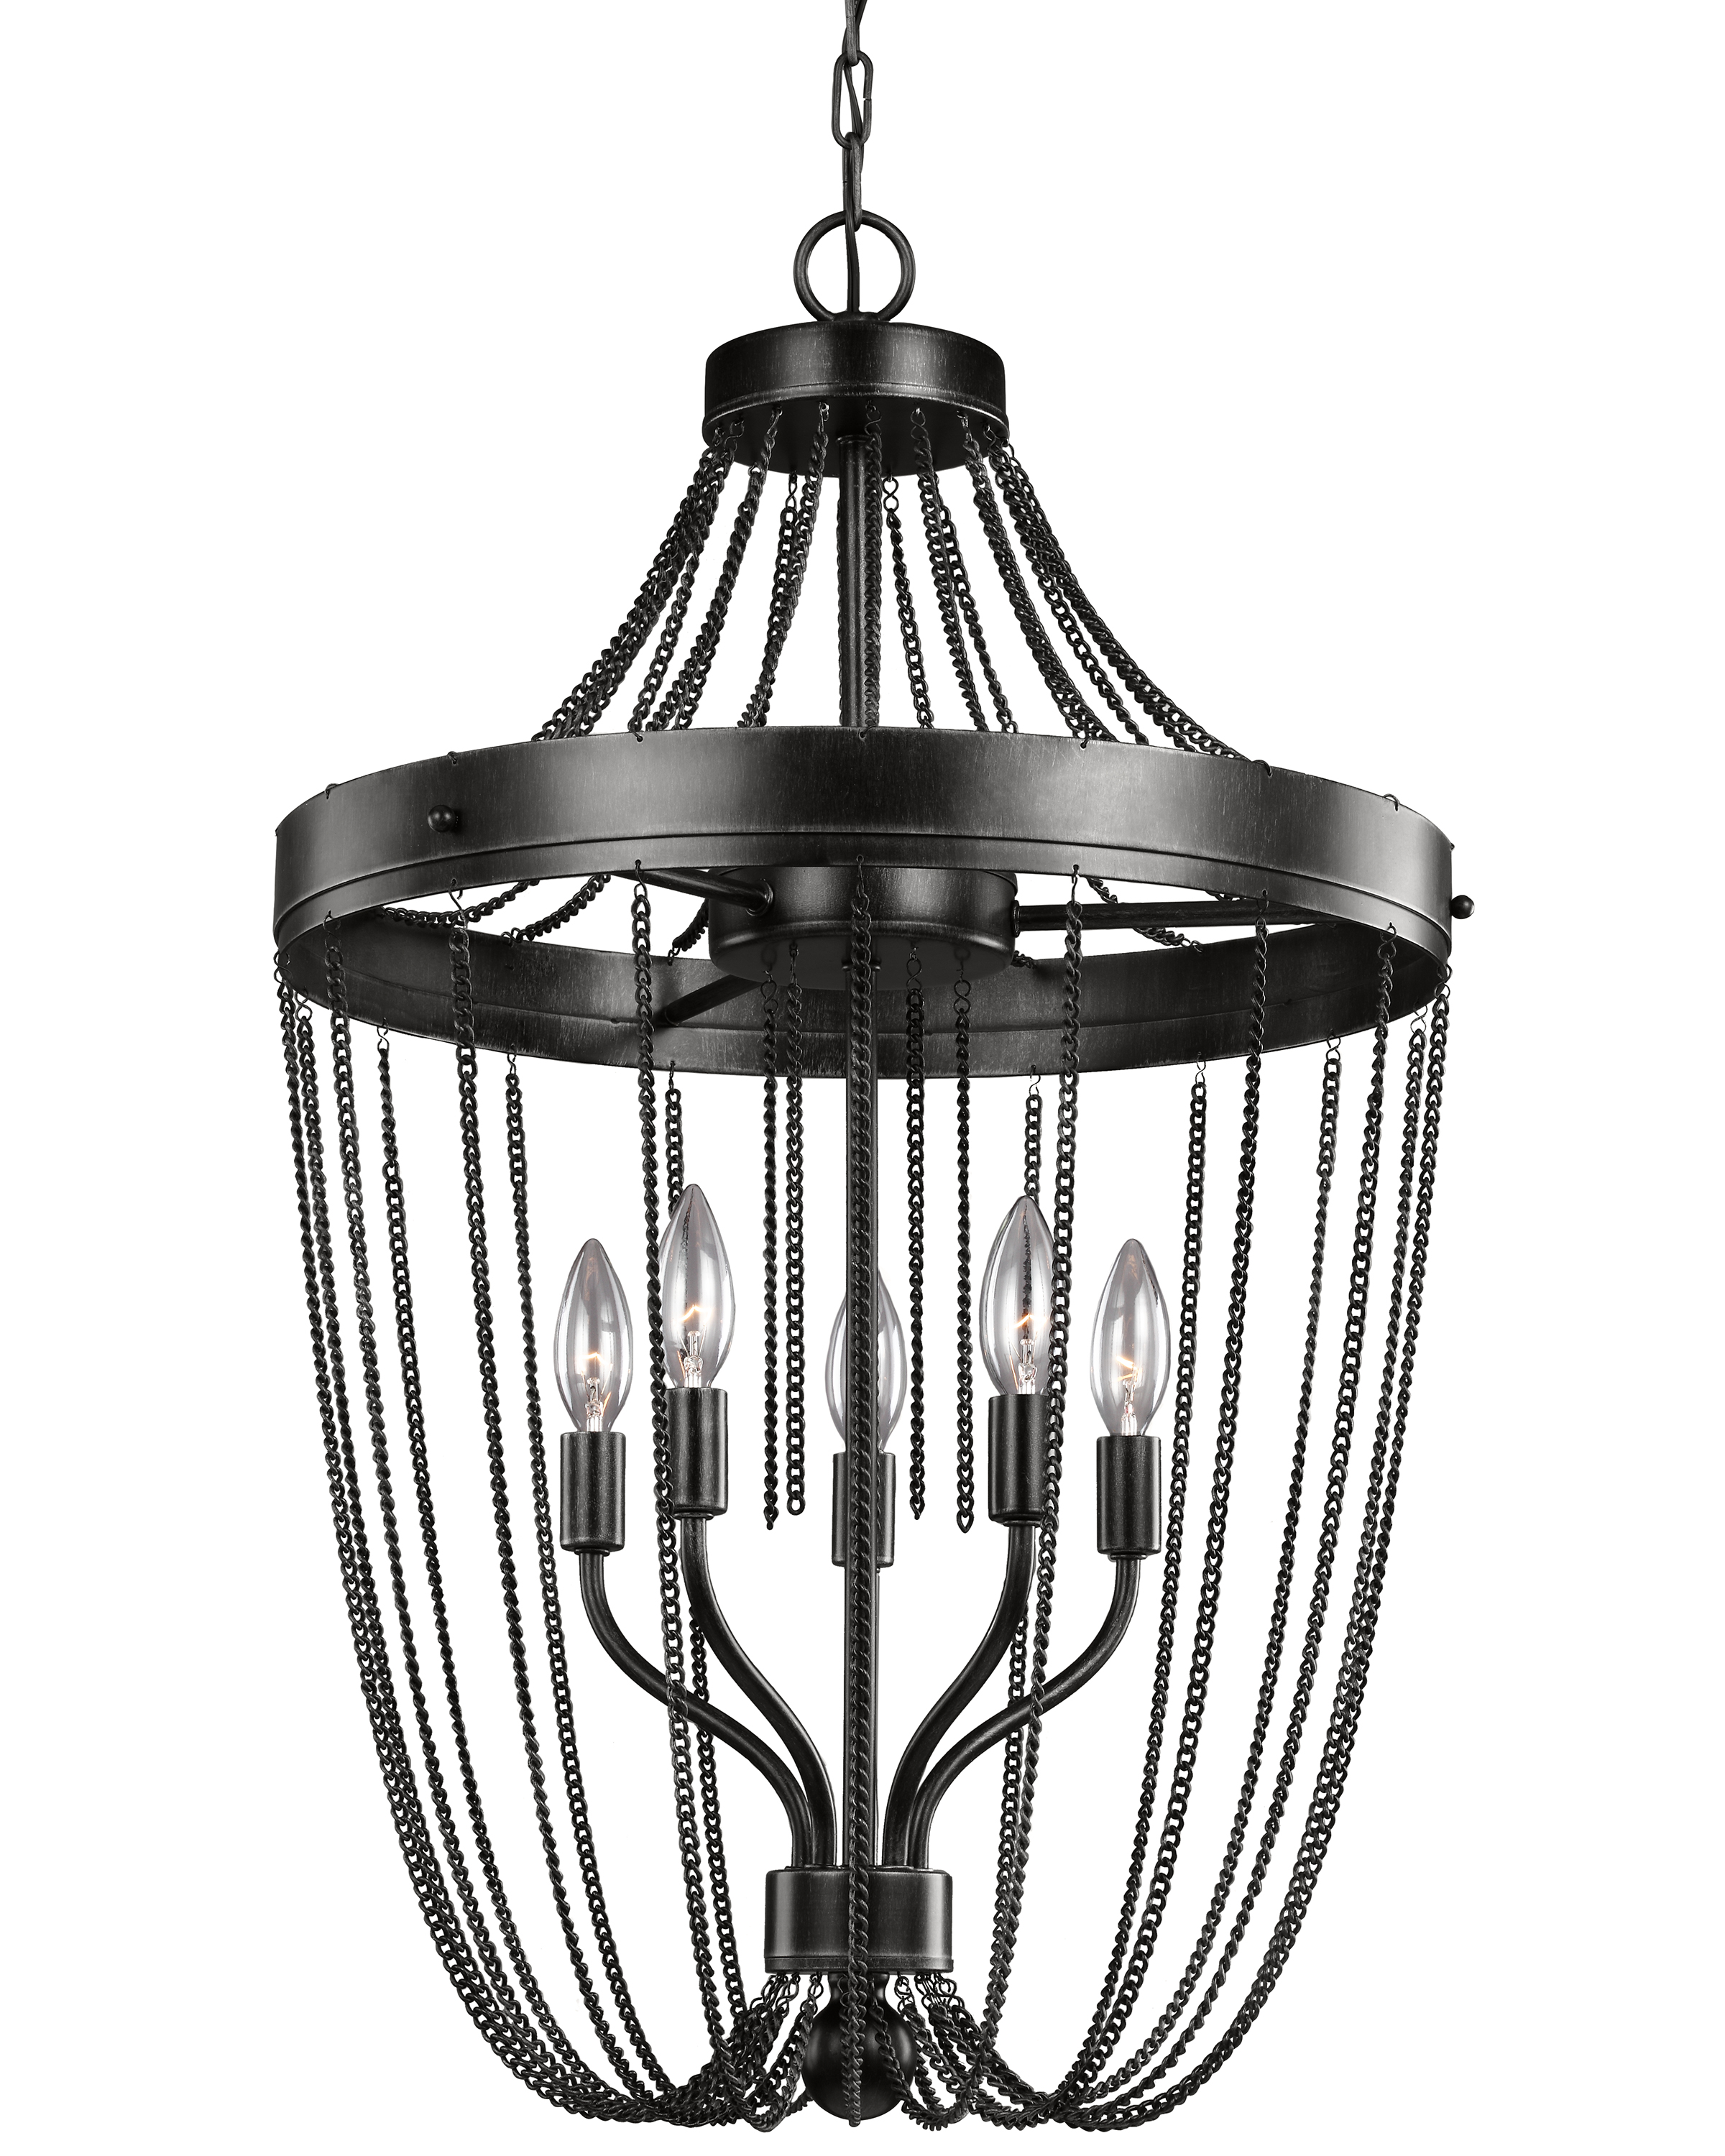 Sea gull lightings new decorative luminaires are on trend for consumers the urban chic kelvyn park five light pendant by sea gull lighting has a classic empire style silhouette publicscrutiny Choice Image